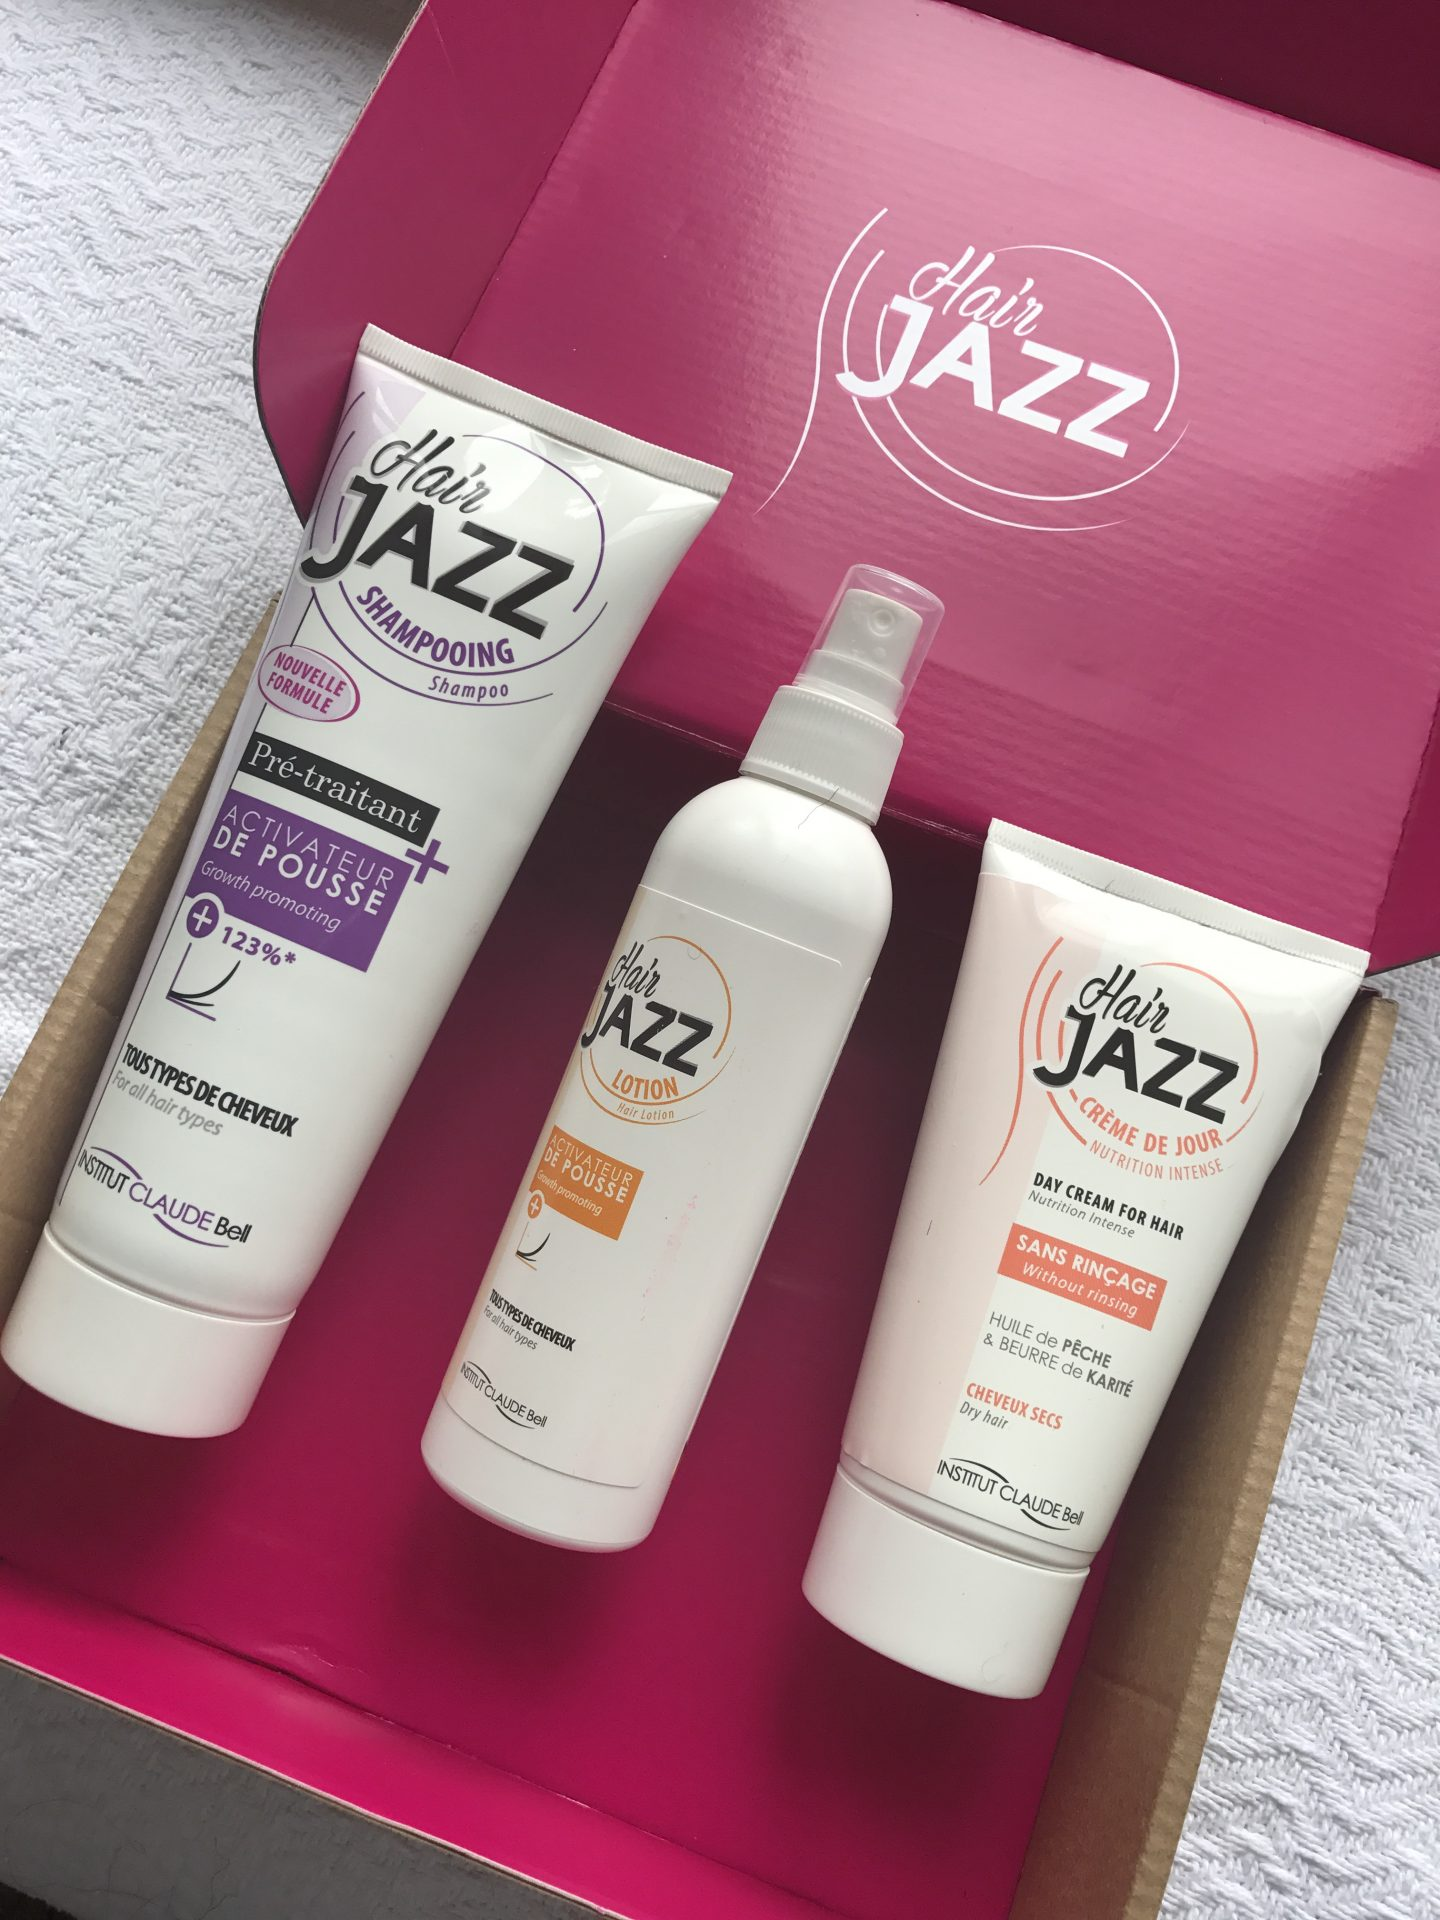 Hair Jazz Review